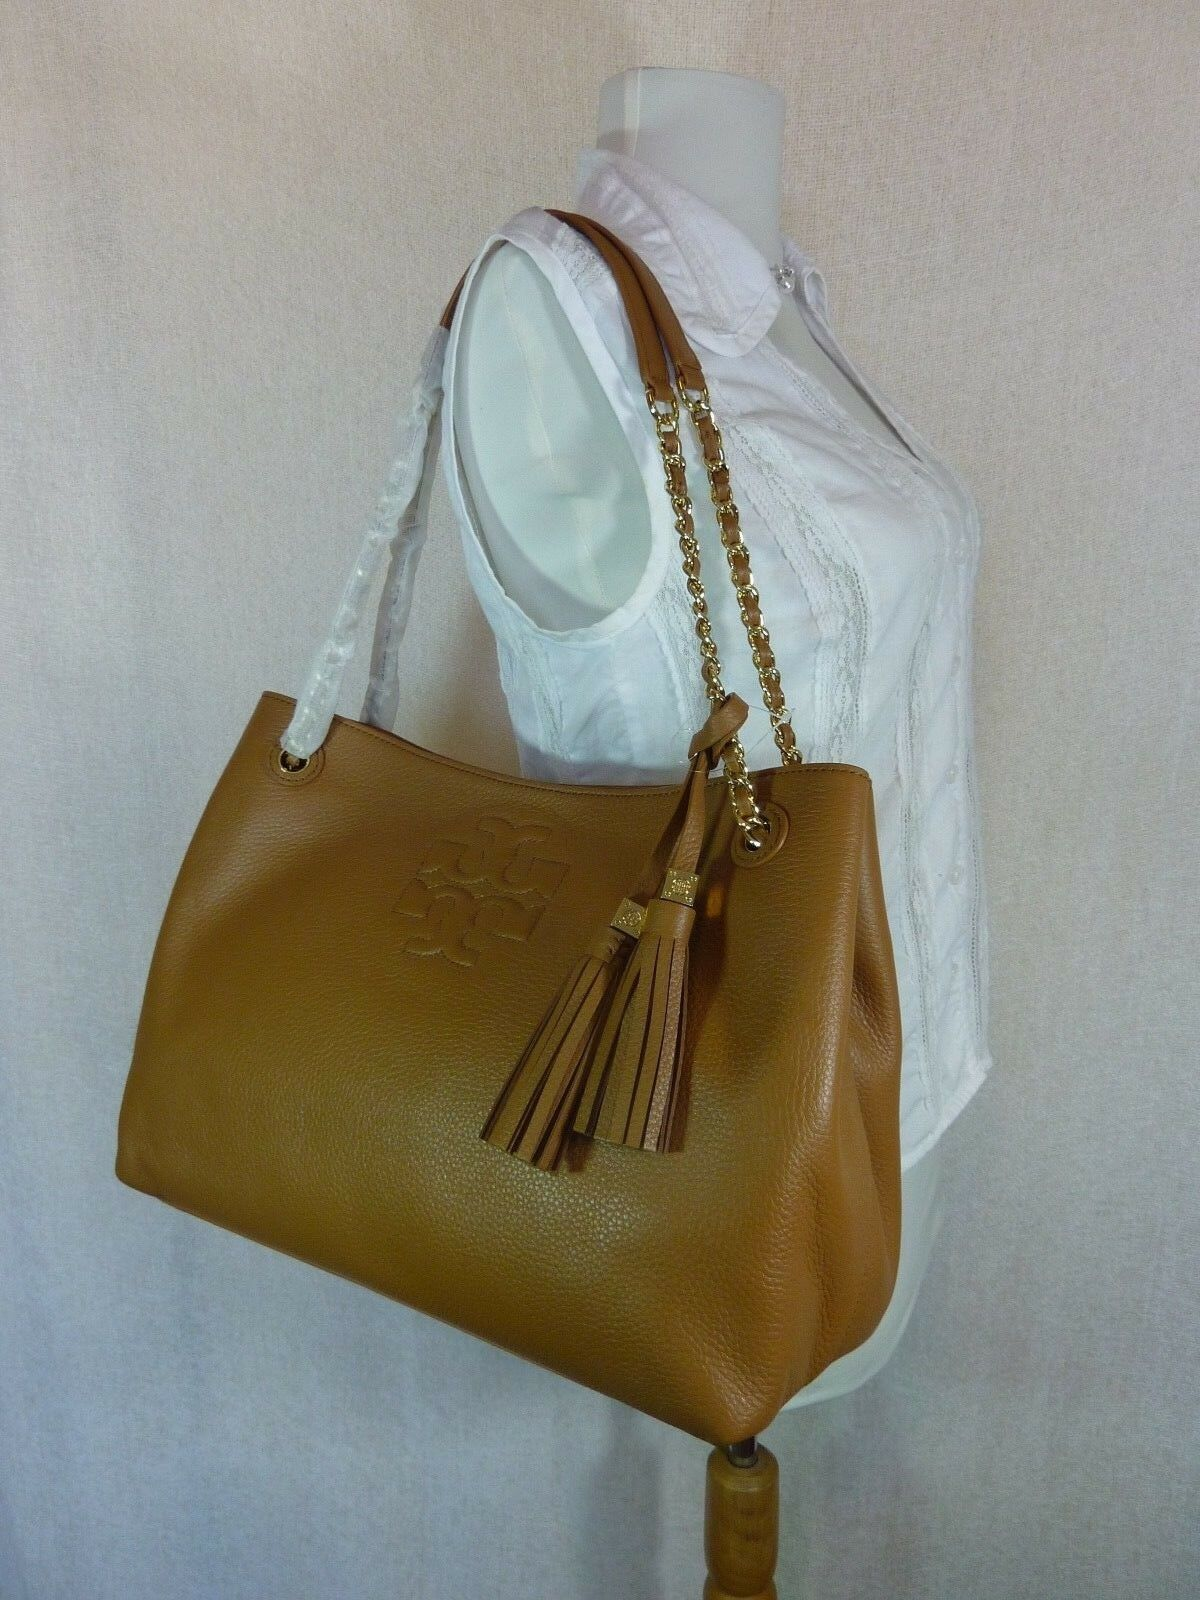 NWT Tory Burch Bark Brown Pebbled Leather Thea Chain Slouchy Tote $495 image 2